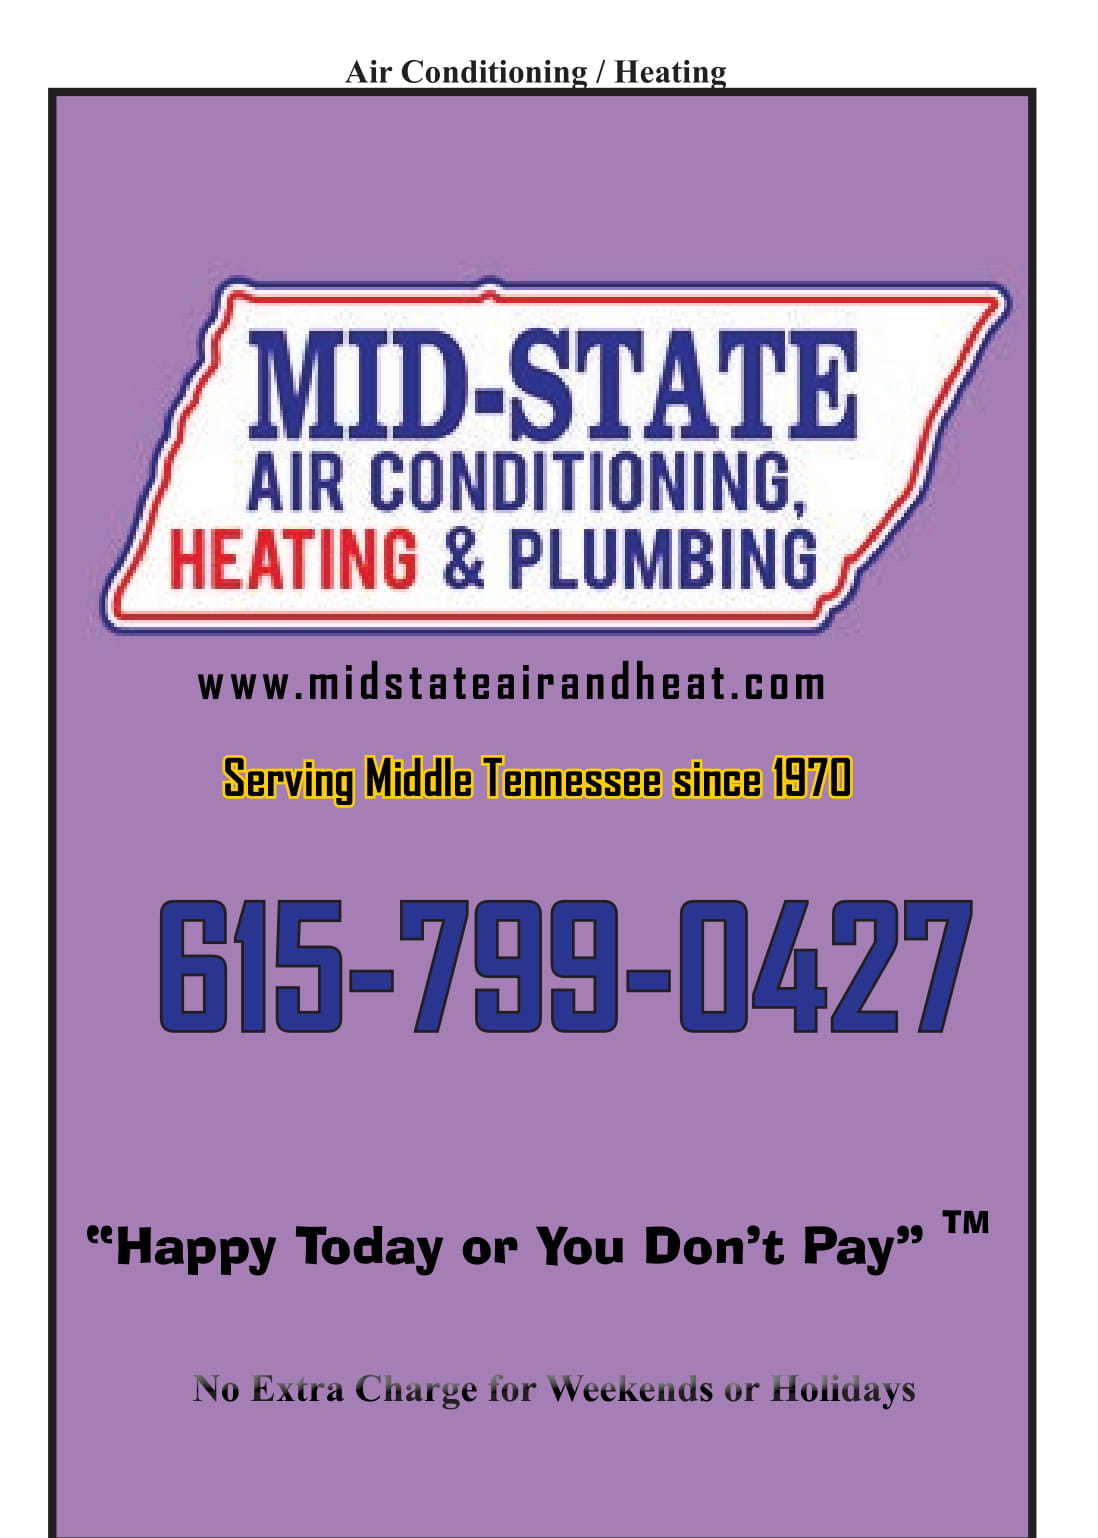 Mid-State Air Conditioning and Heating